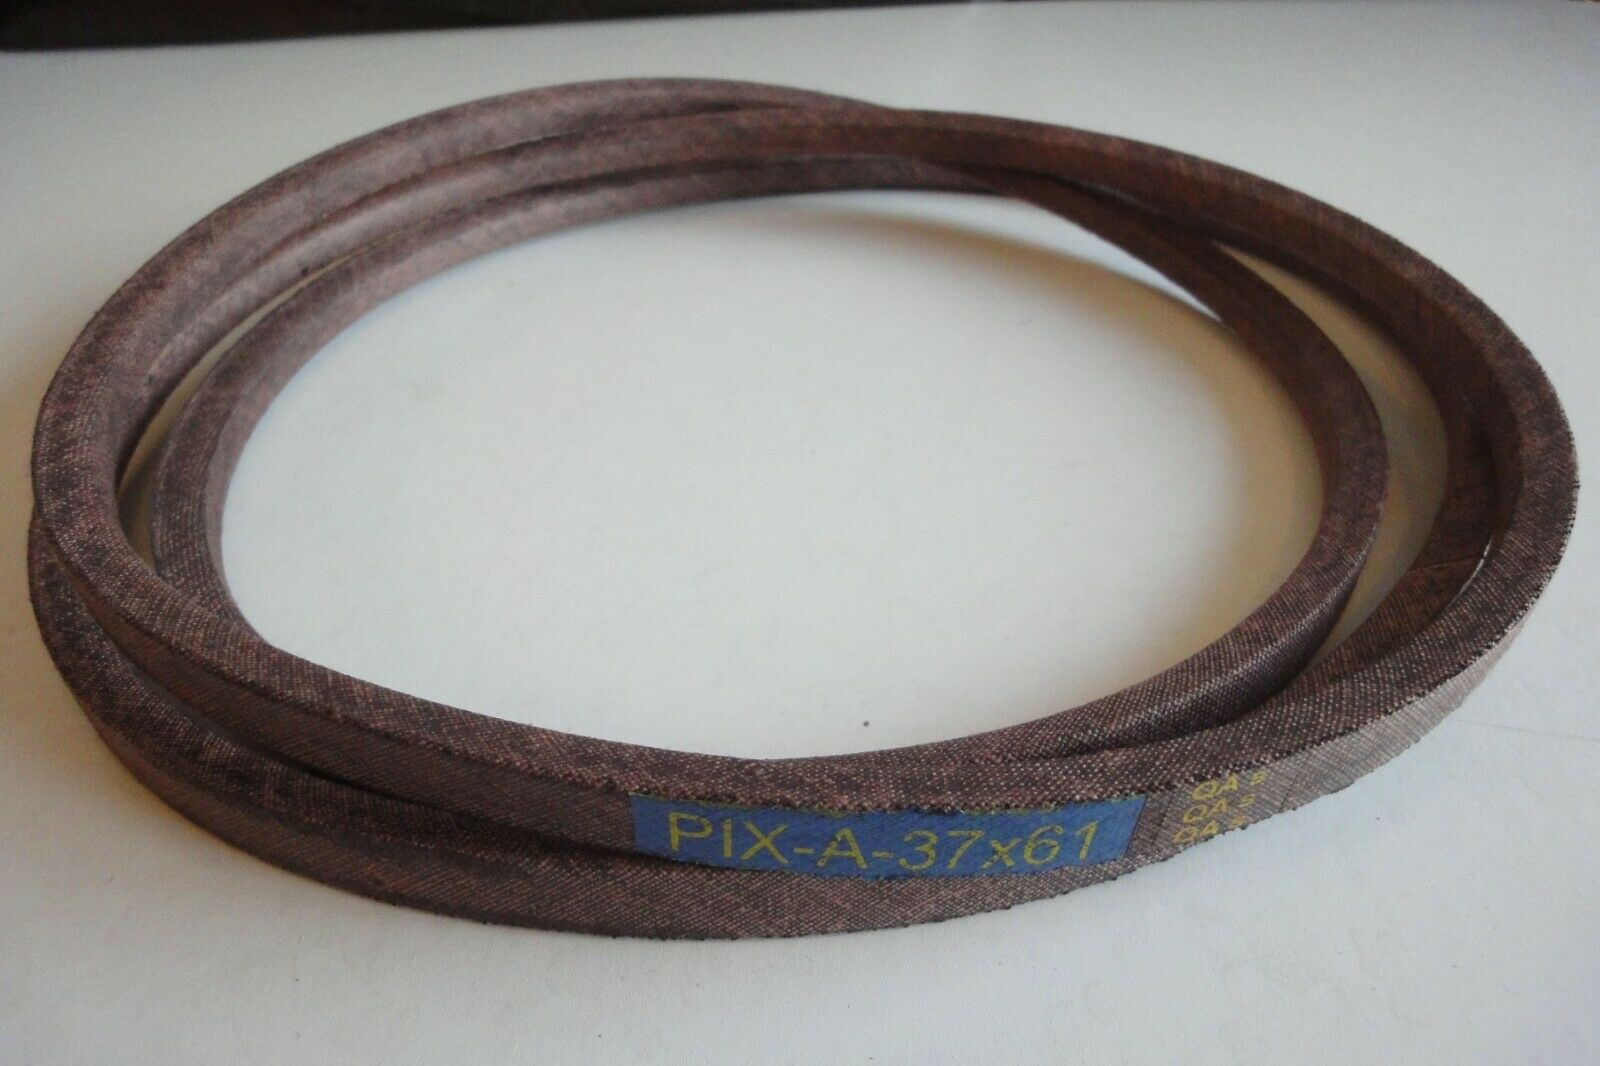 "MURRAY 37 x 61 Pix Replacement Motion Drive belt 38'"" 40"", 42"